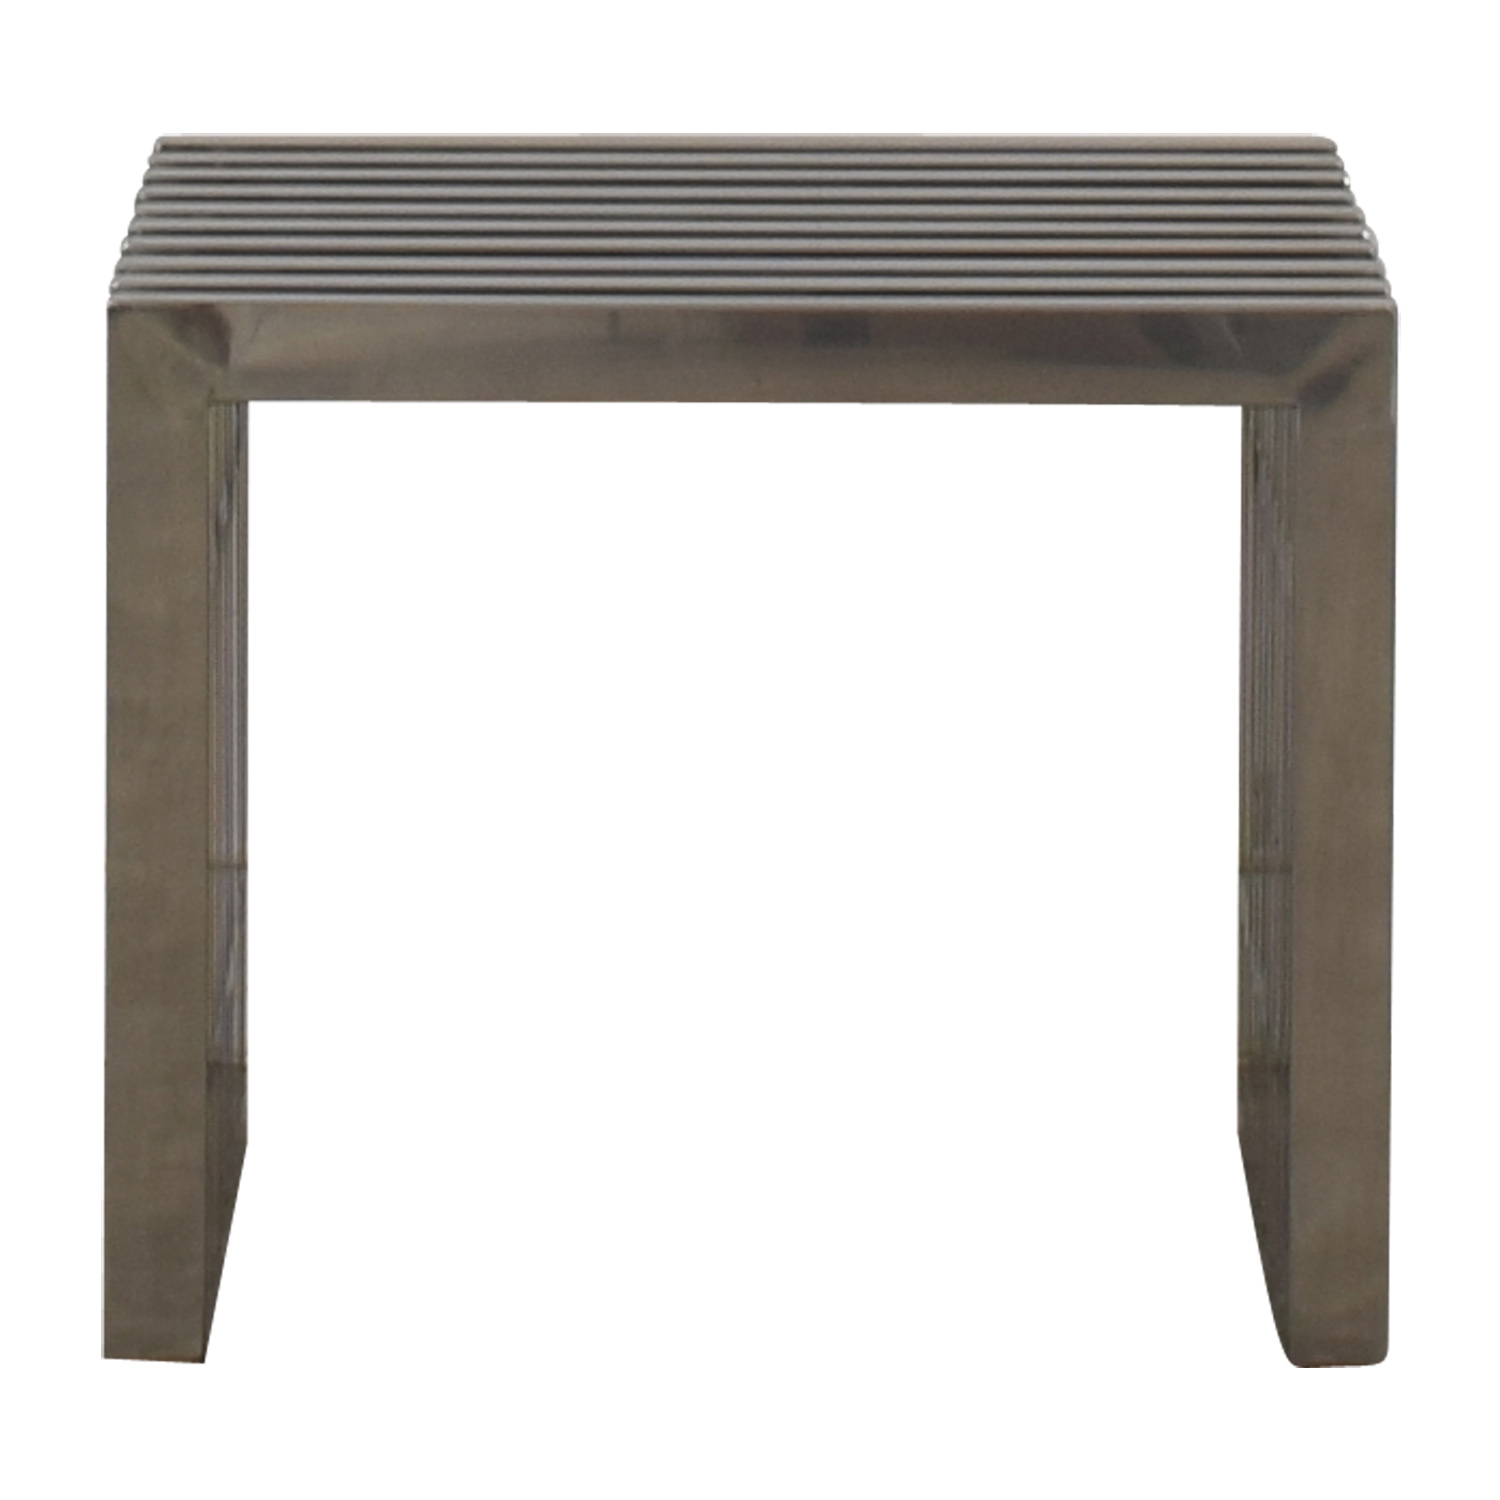 buy Mid-Century Metal Bench or End Table  Benches